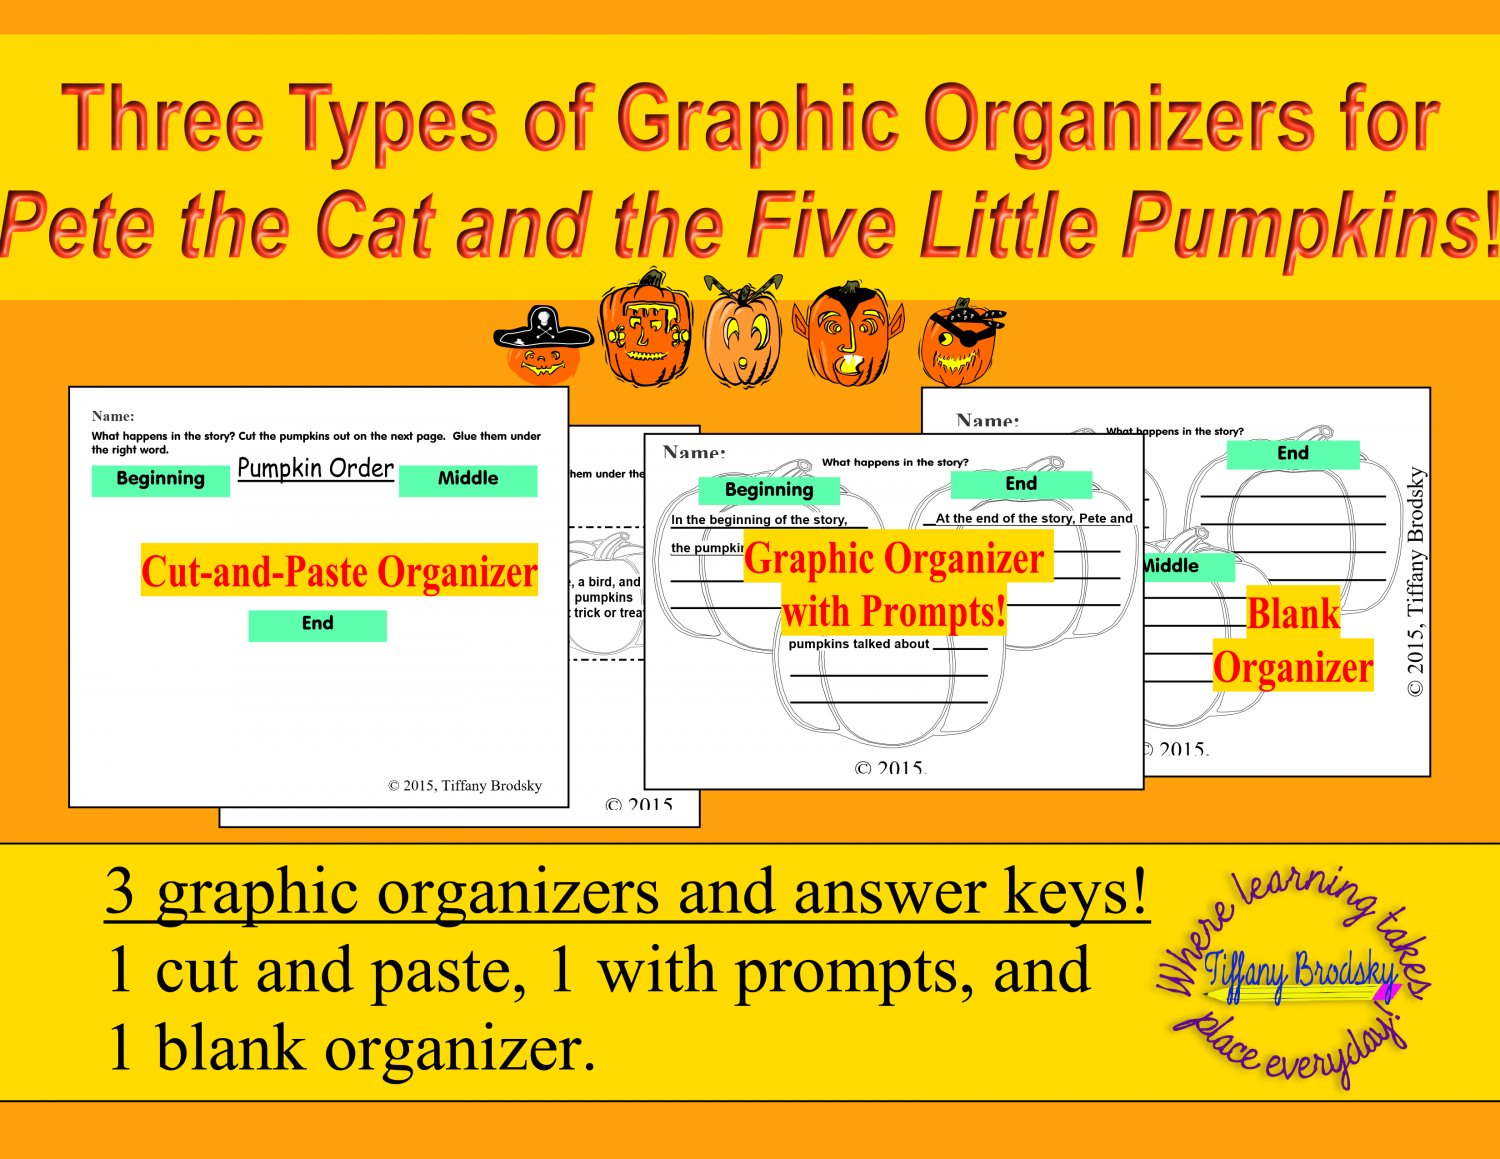 Three Types of Graphic Organizers for Pete the Cat and the Five Little Pumpkins!  PDF